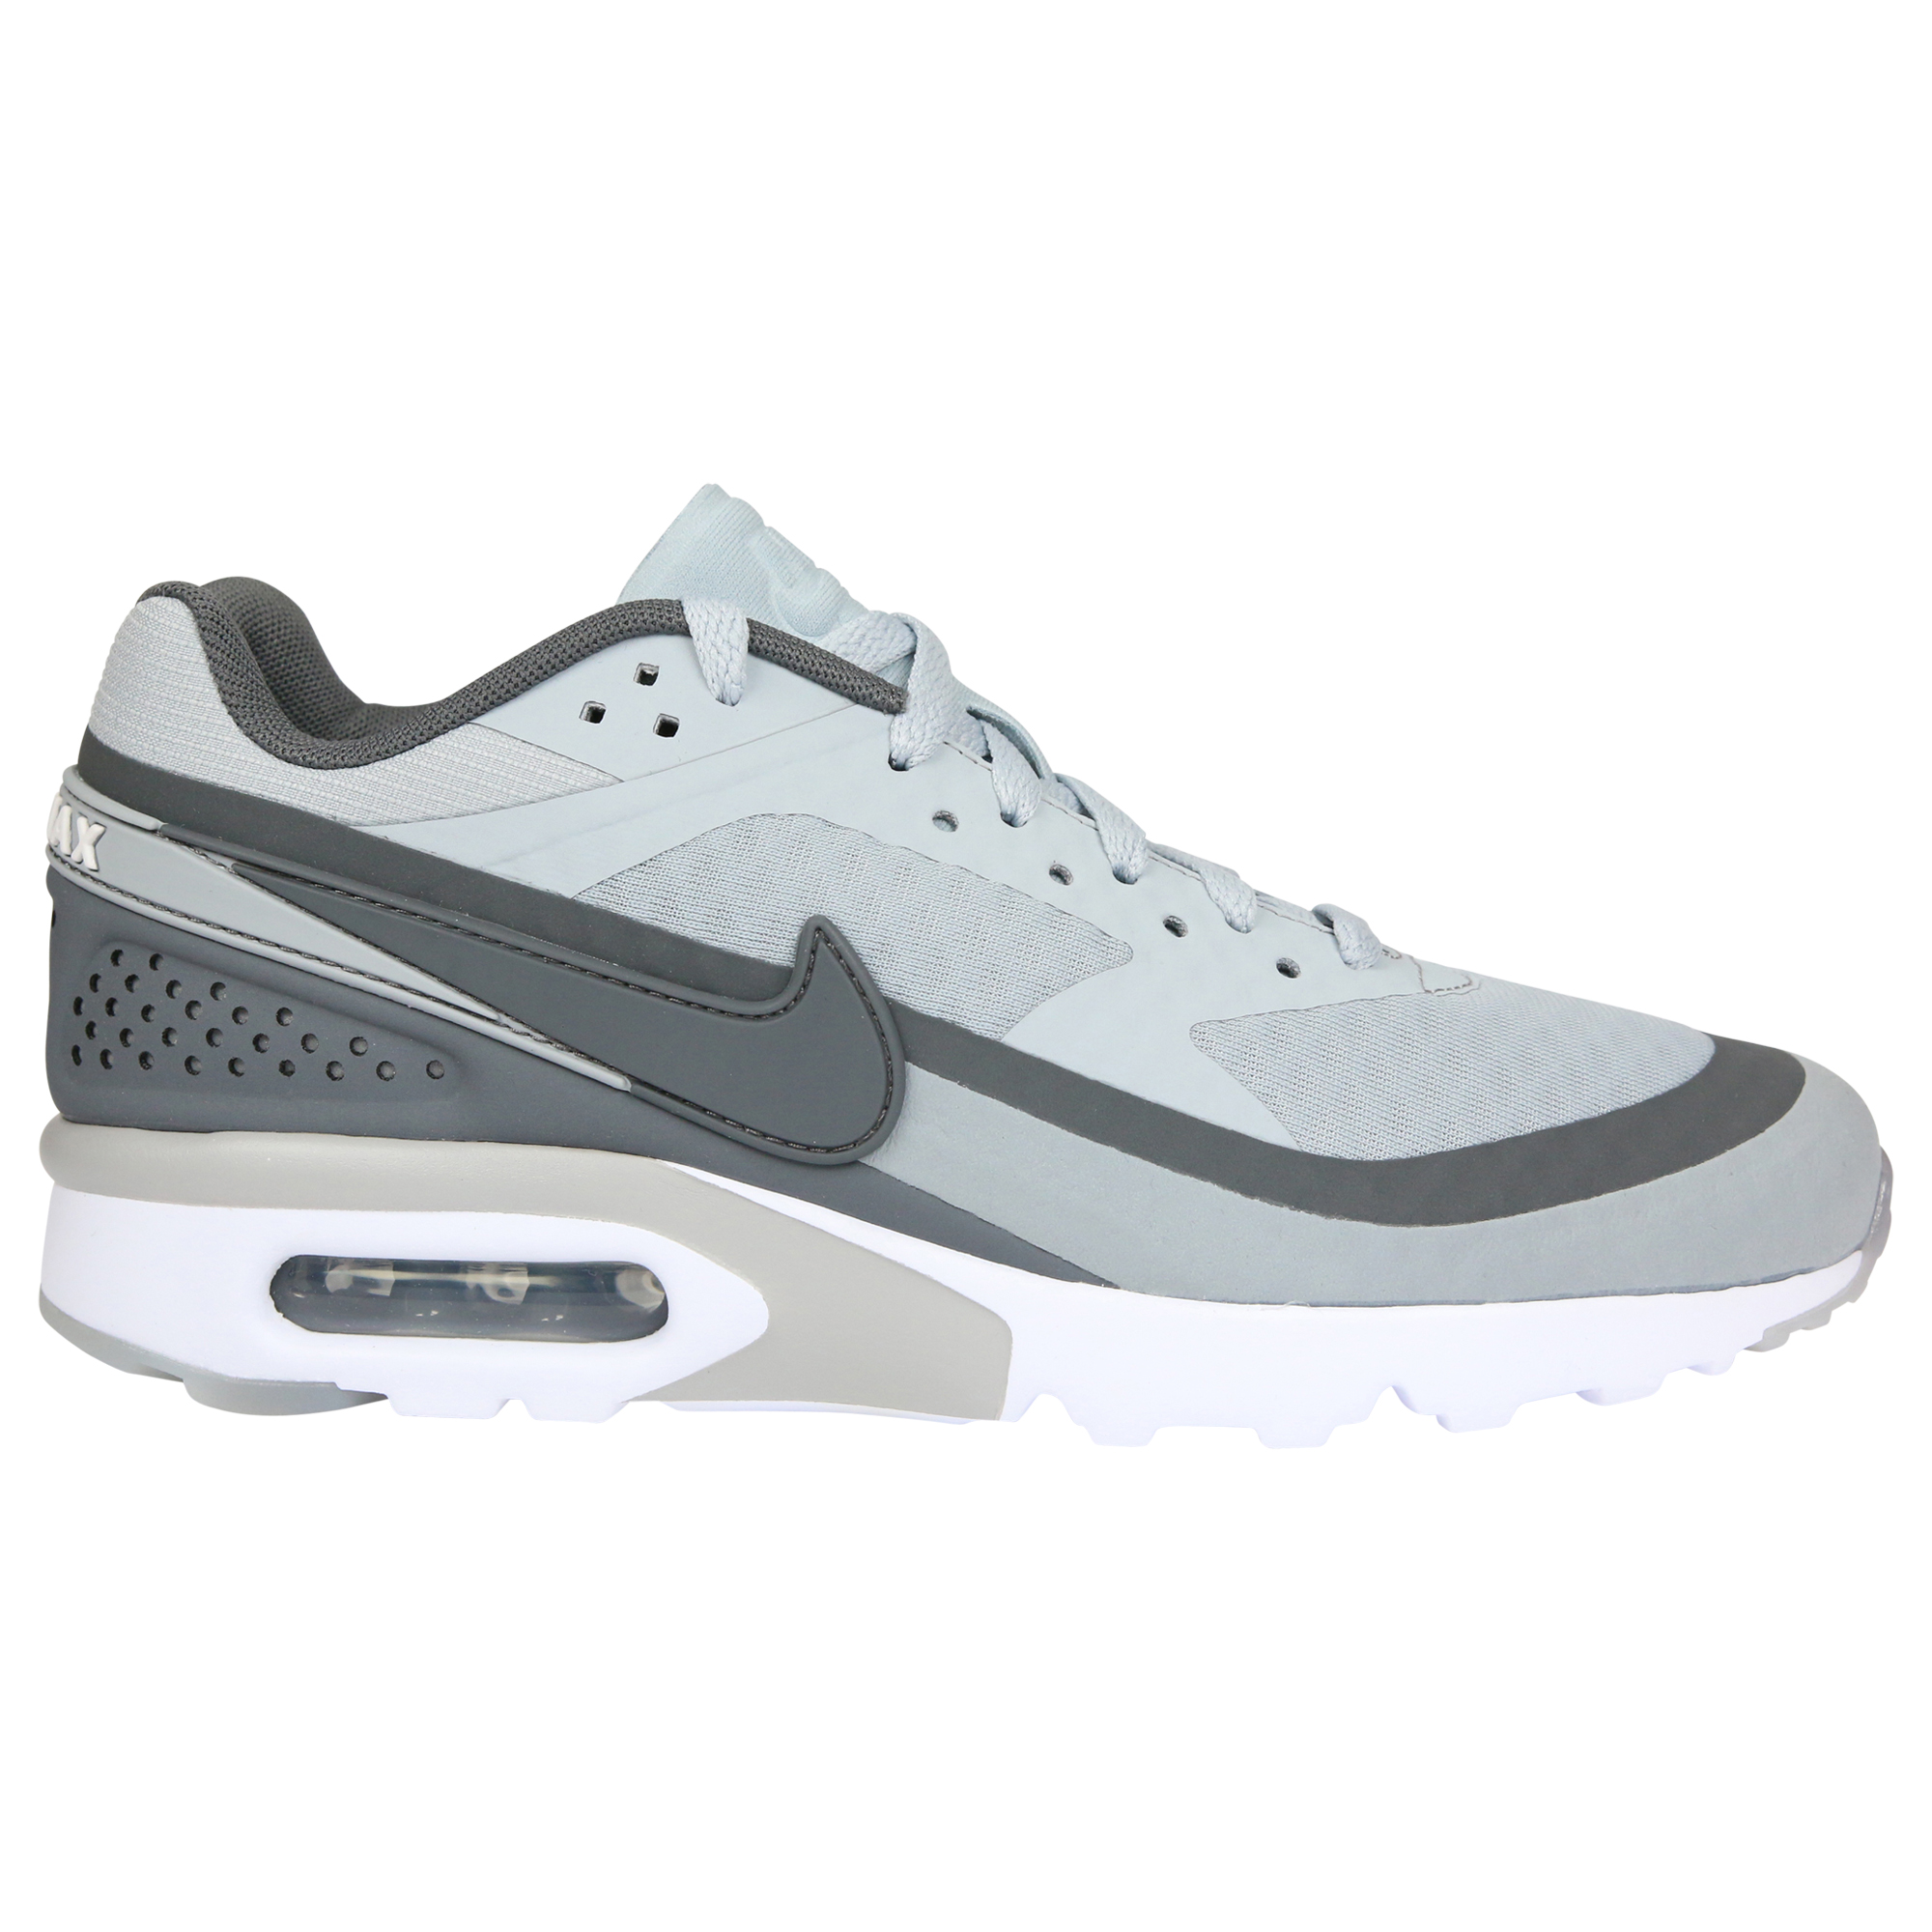 nike air max bw ultra premium og schuhe turnschuhe sneaker. Black Bedroom Furniture Sets. Home Design Ideas